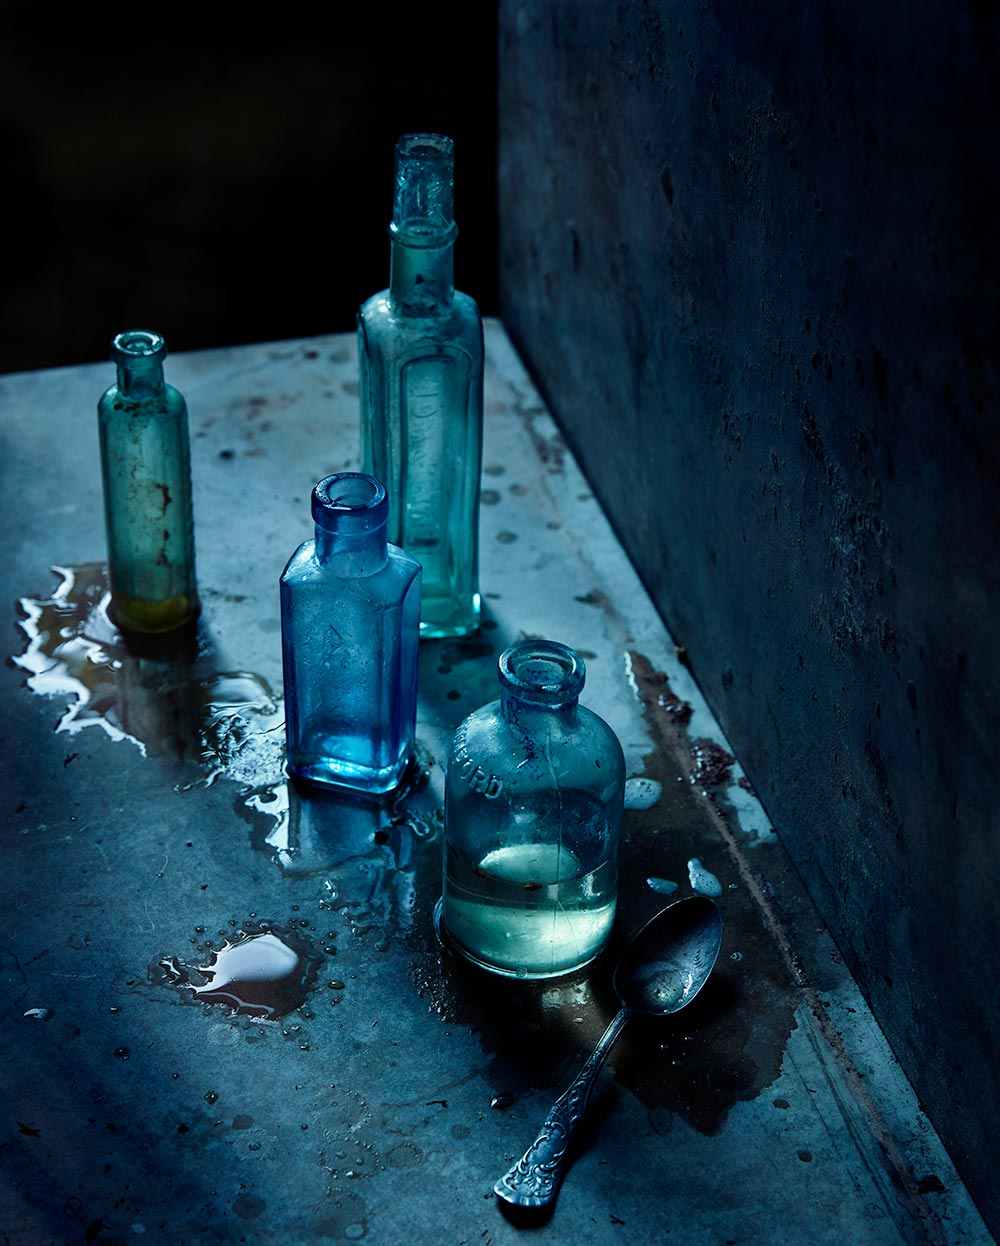 Dark moody still life photograph of glass bottles on a concrete background